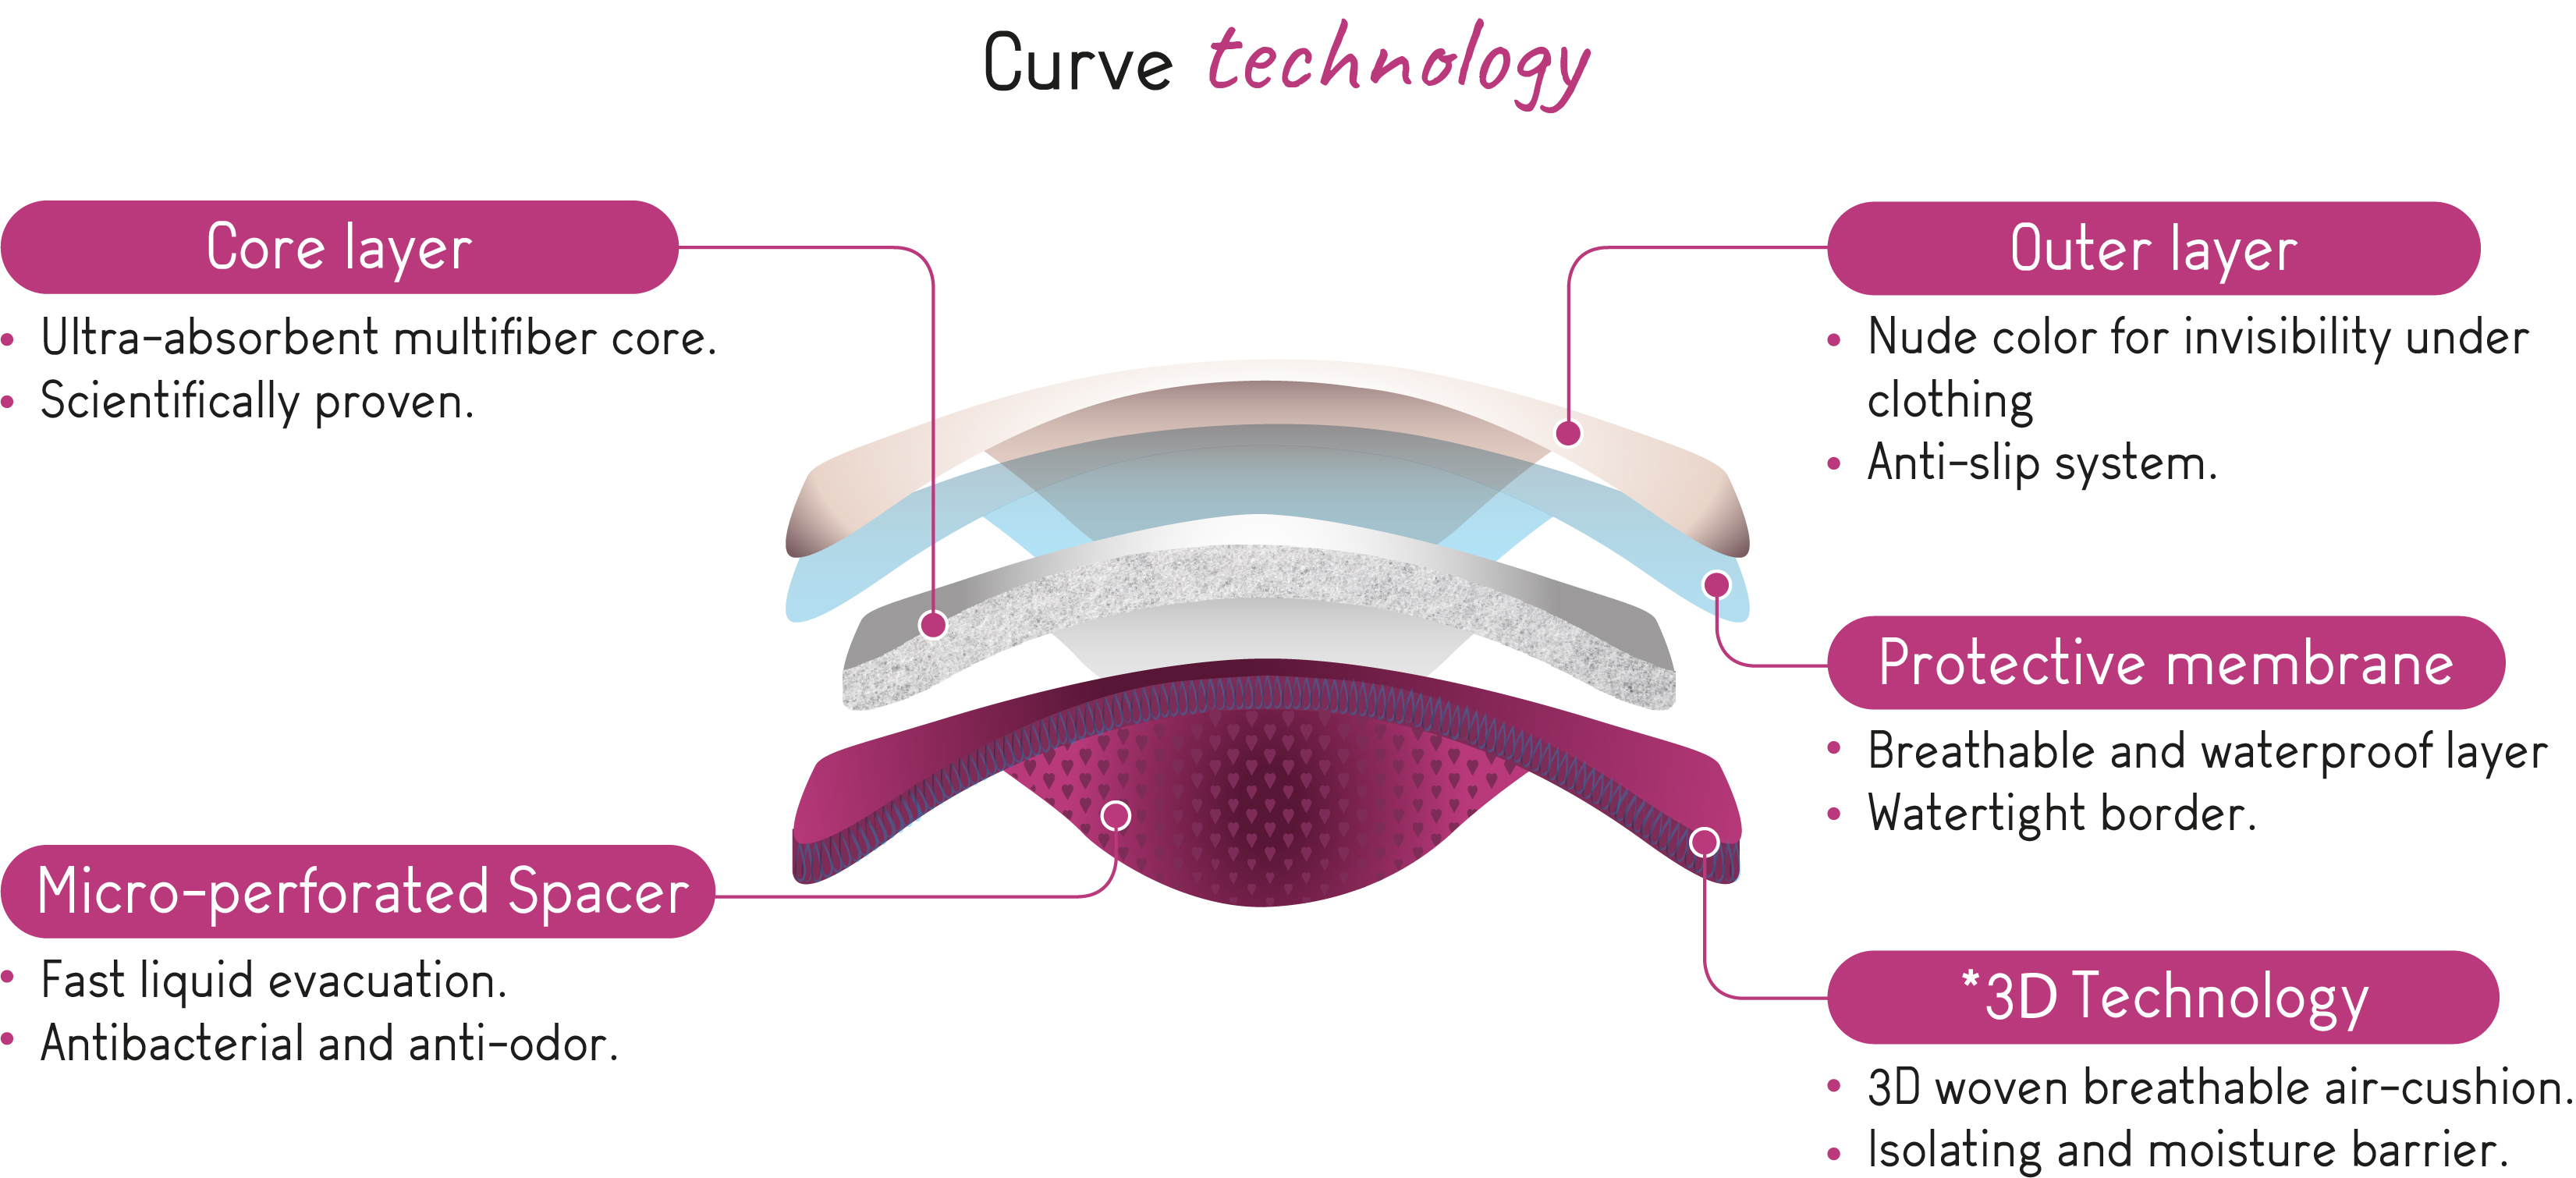 curve-cache-coeur-night-washable-contour-nursing-pads-technology